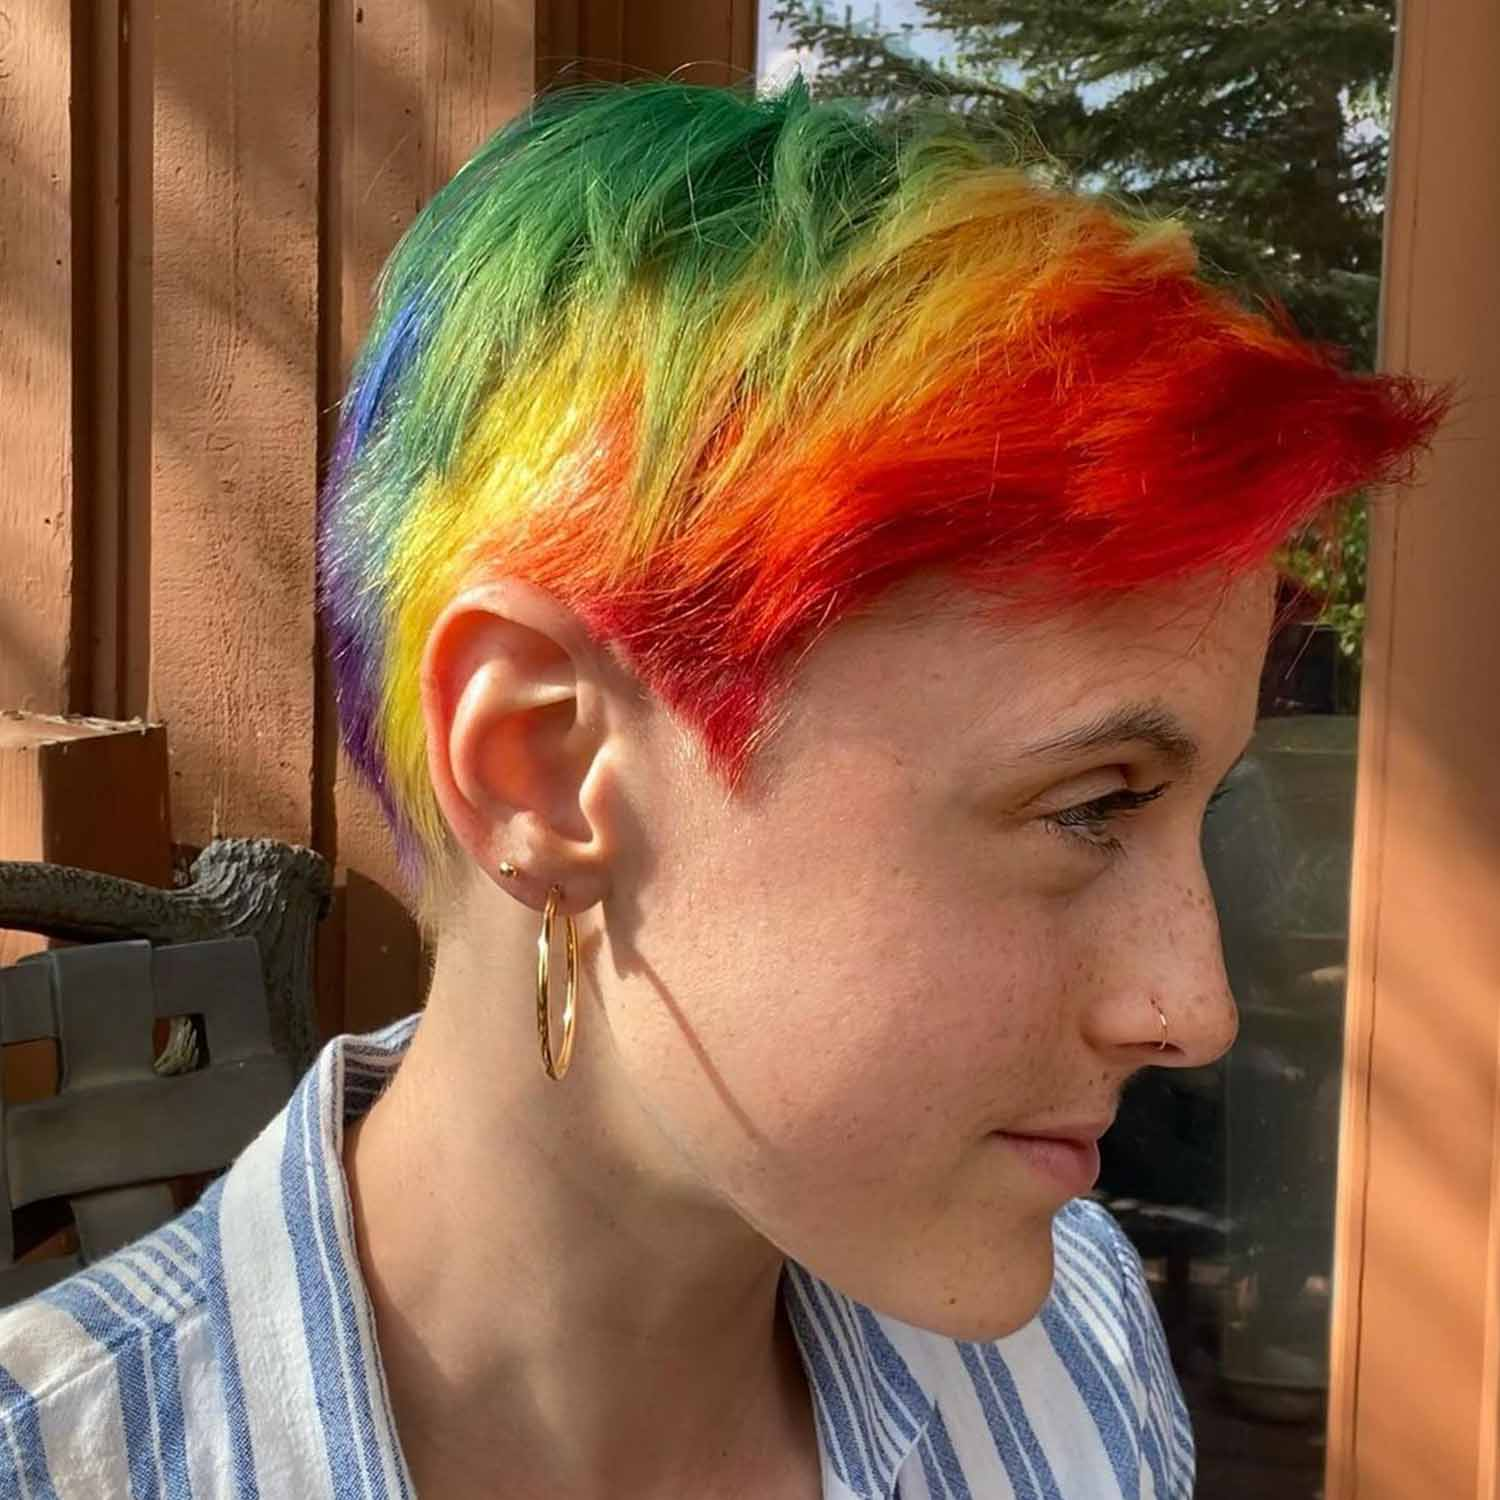 Person with a pixie cut and rainbow streaks in their hair.